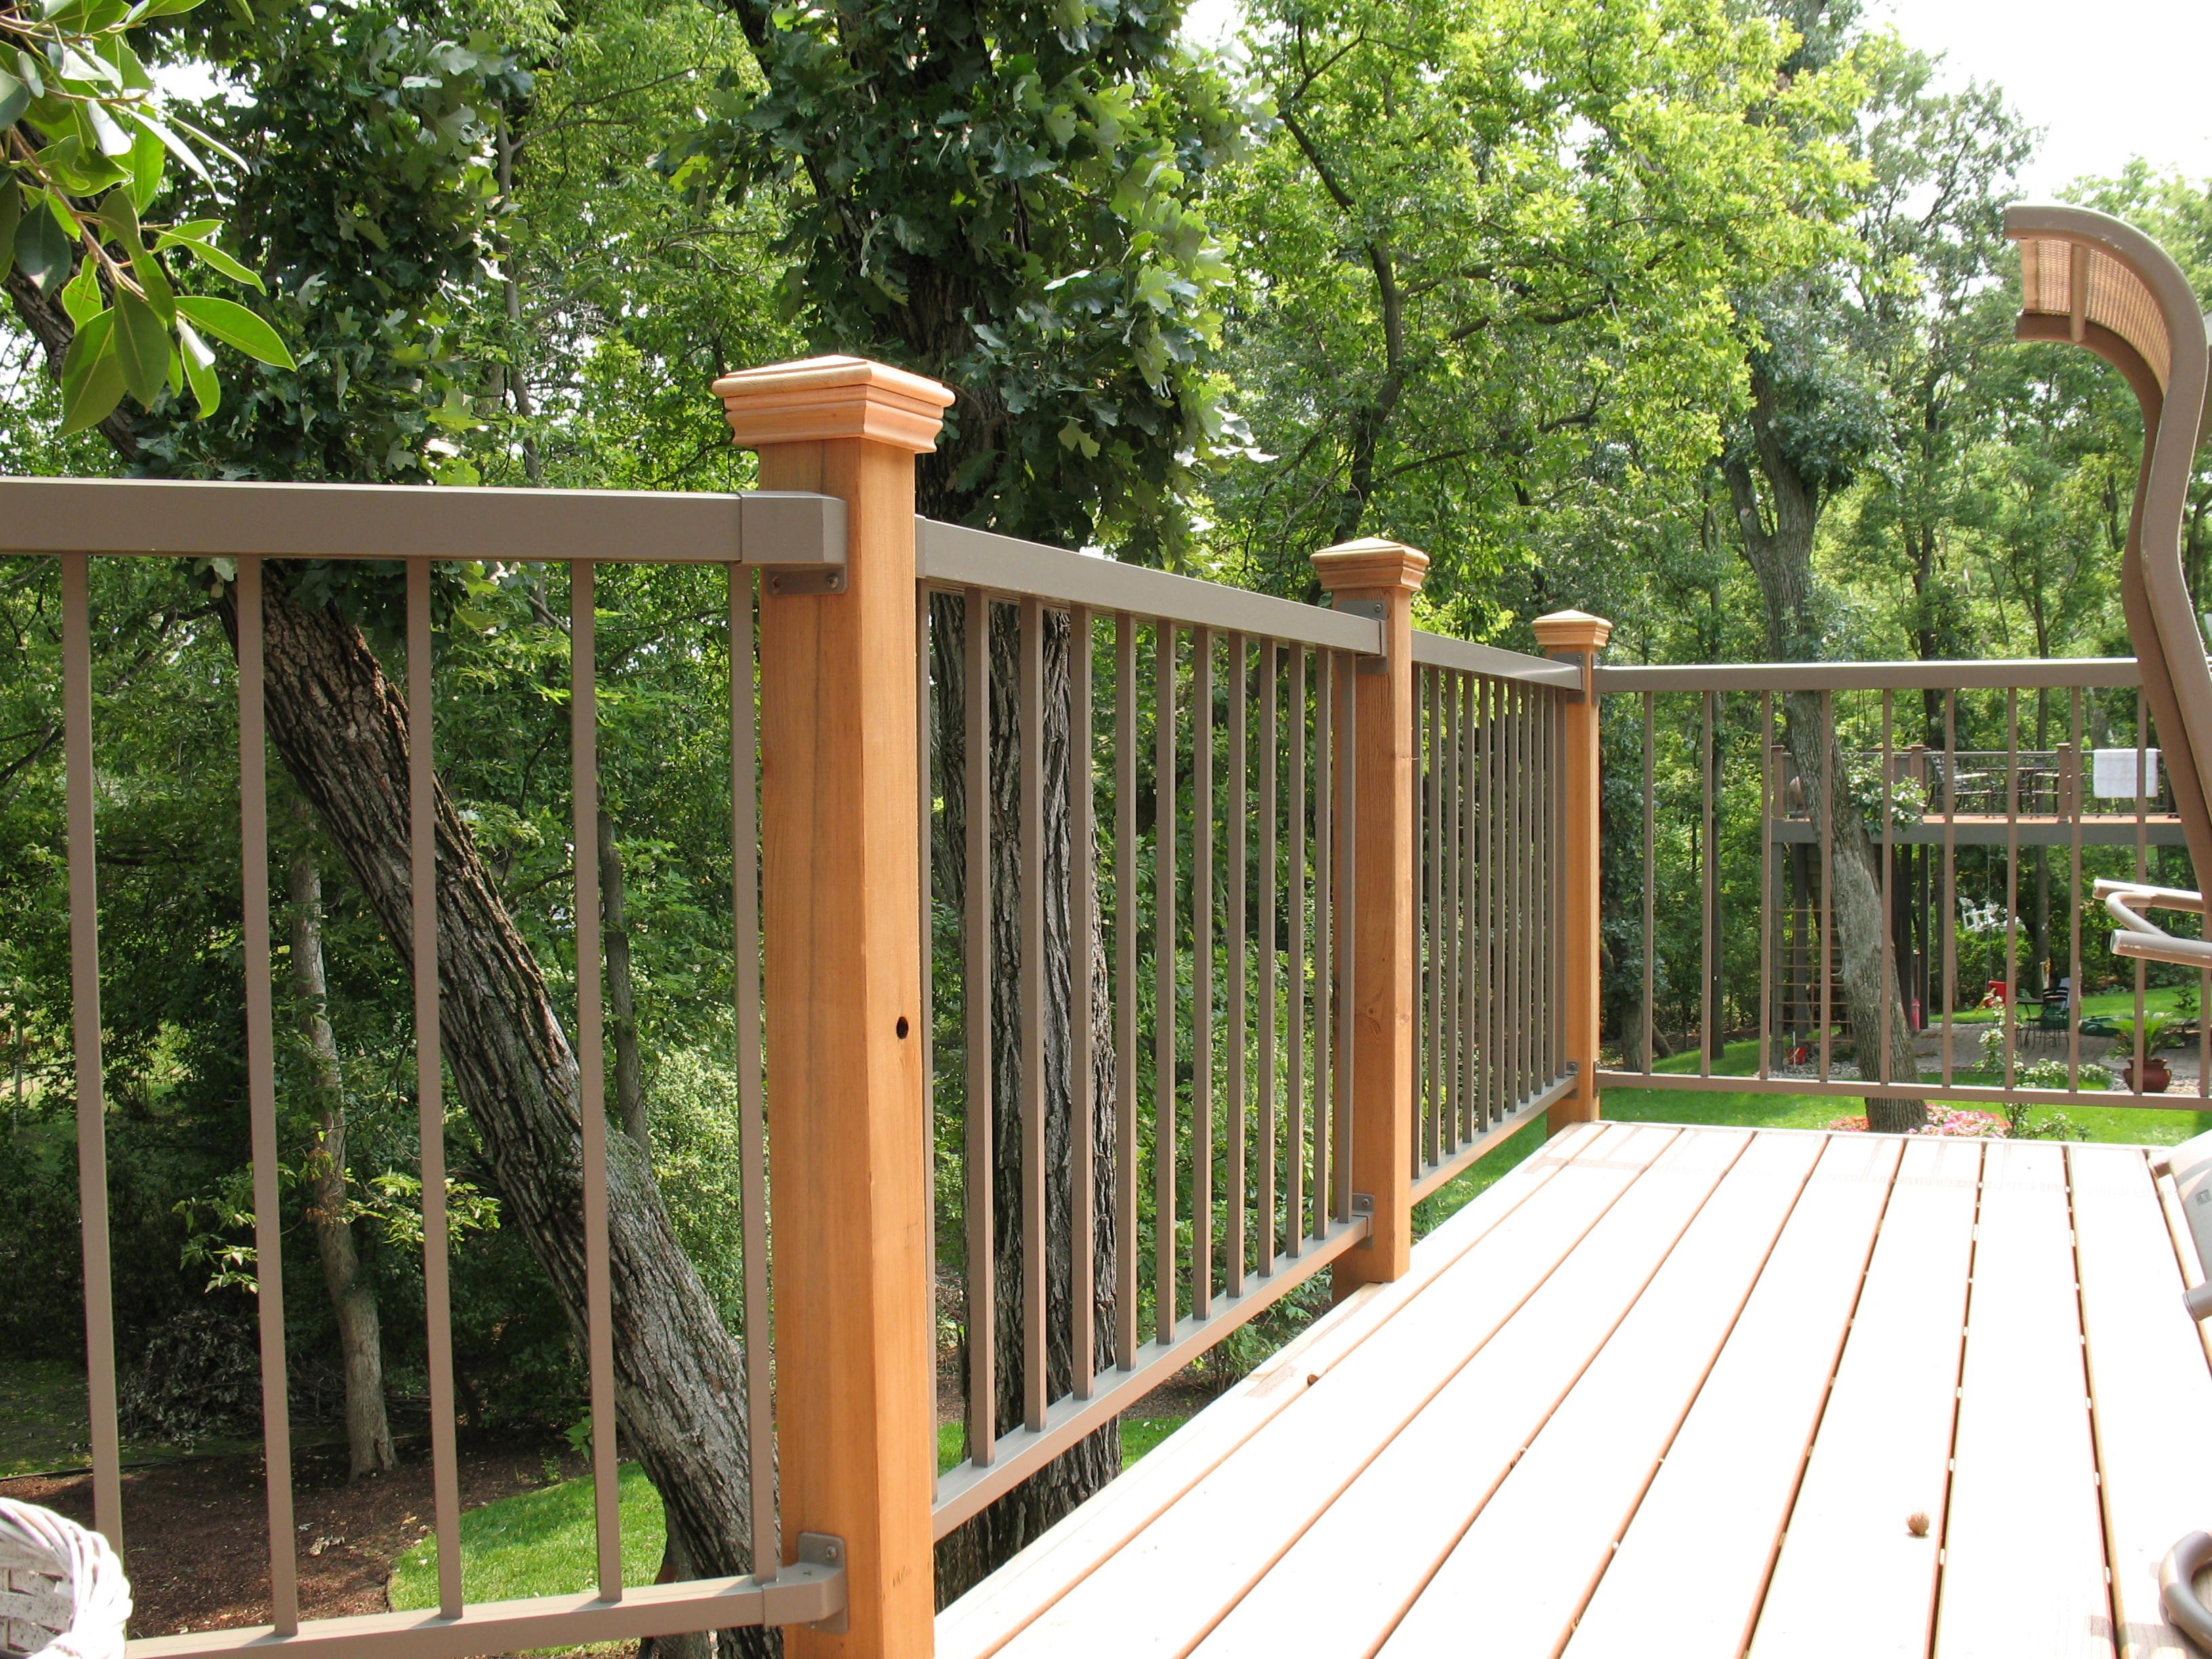 Wrought Iron Fence With Wood Posts Google Search Deck Skirting Deck Railings Rustic Deck